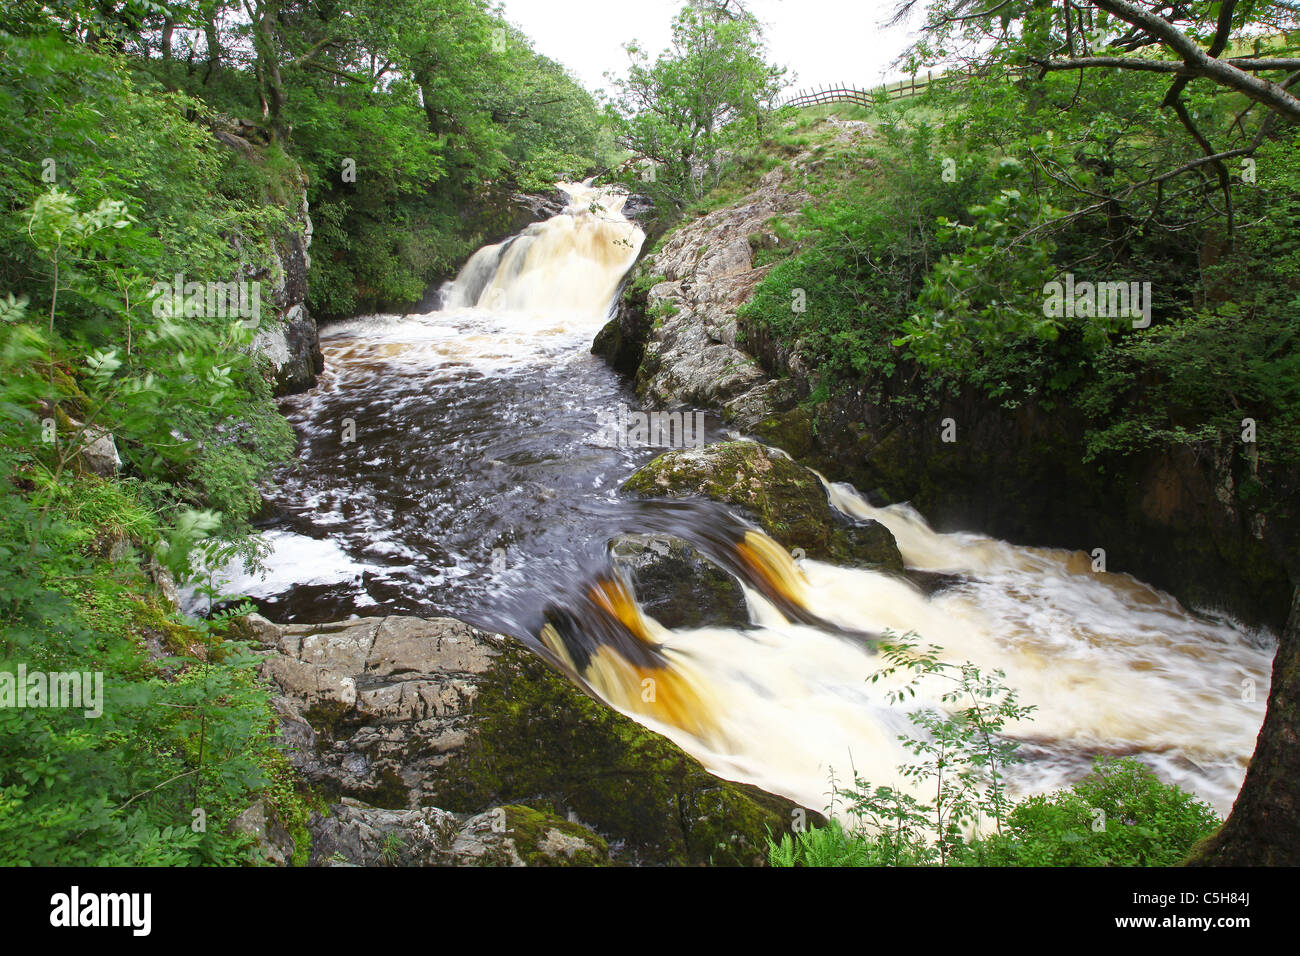 Beezley Falls, Ingleton Waterfalls Trail, Ingleton, Yorkshire Dales National Park, England, UK - Stock Image